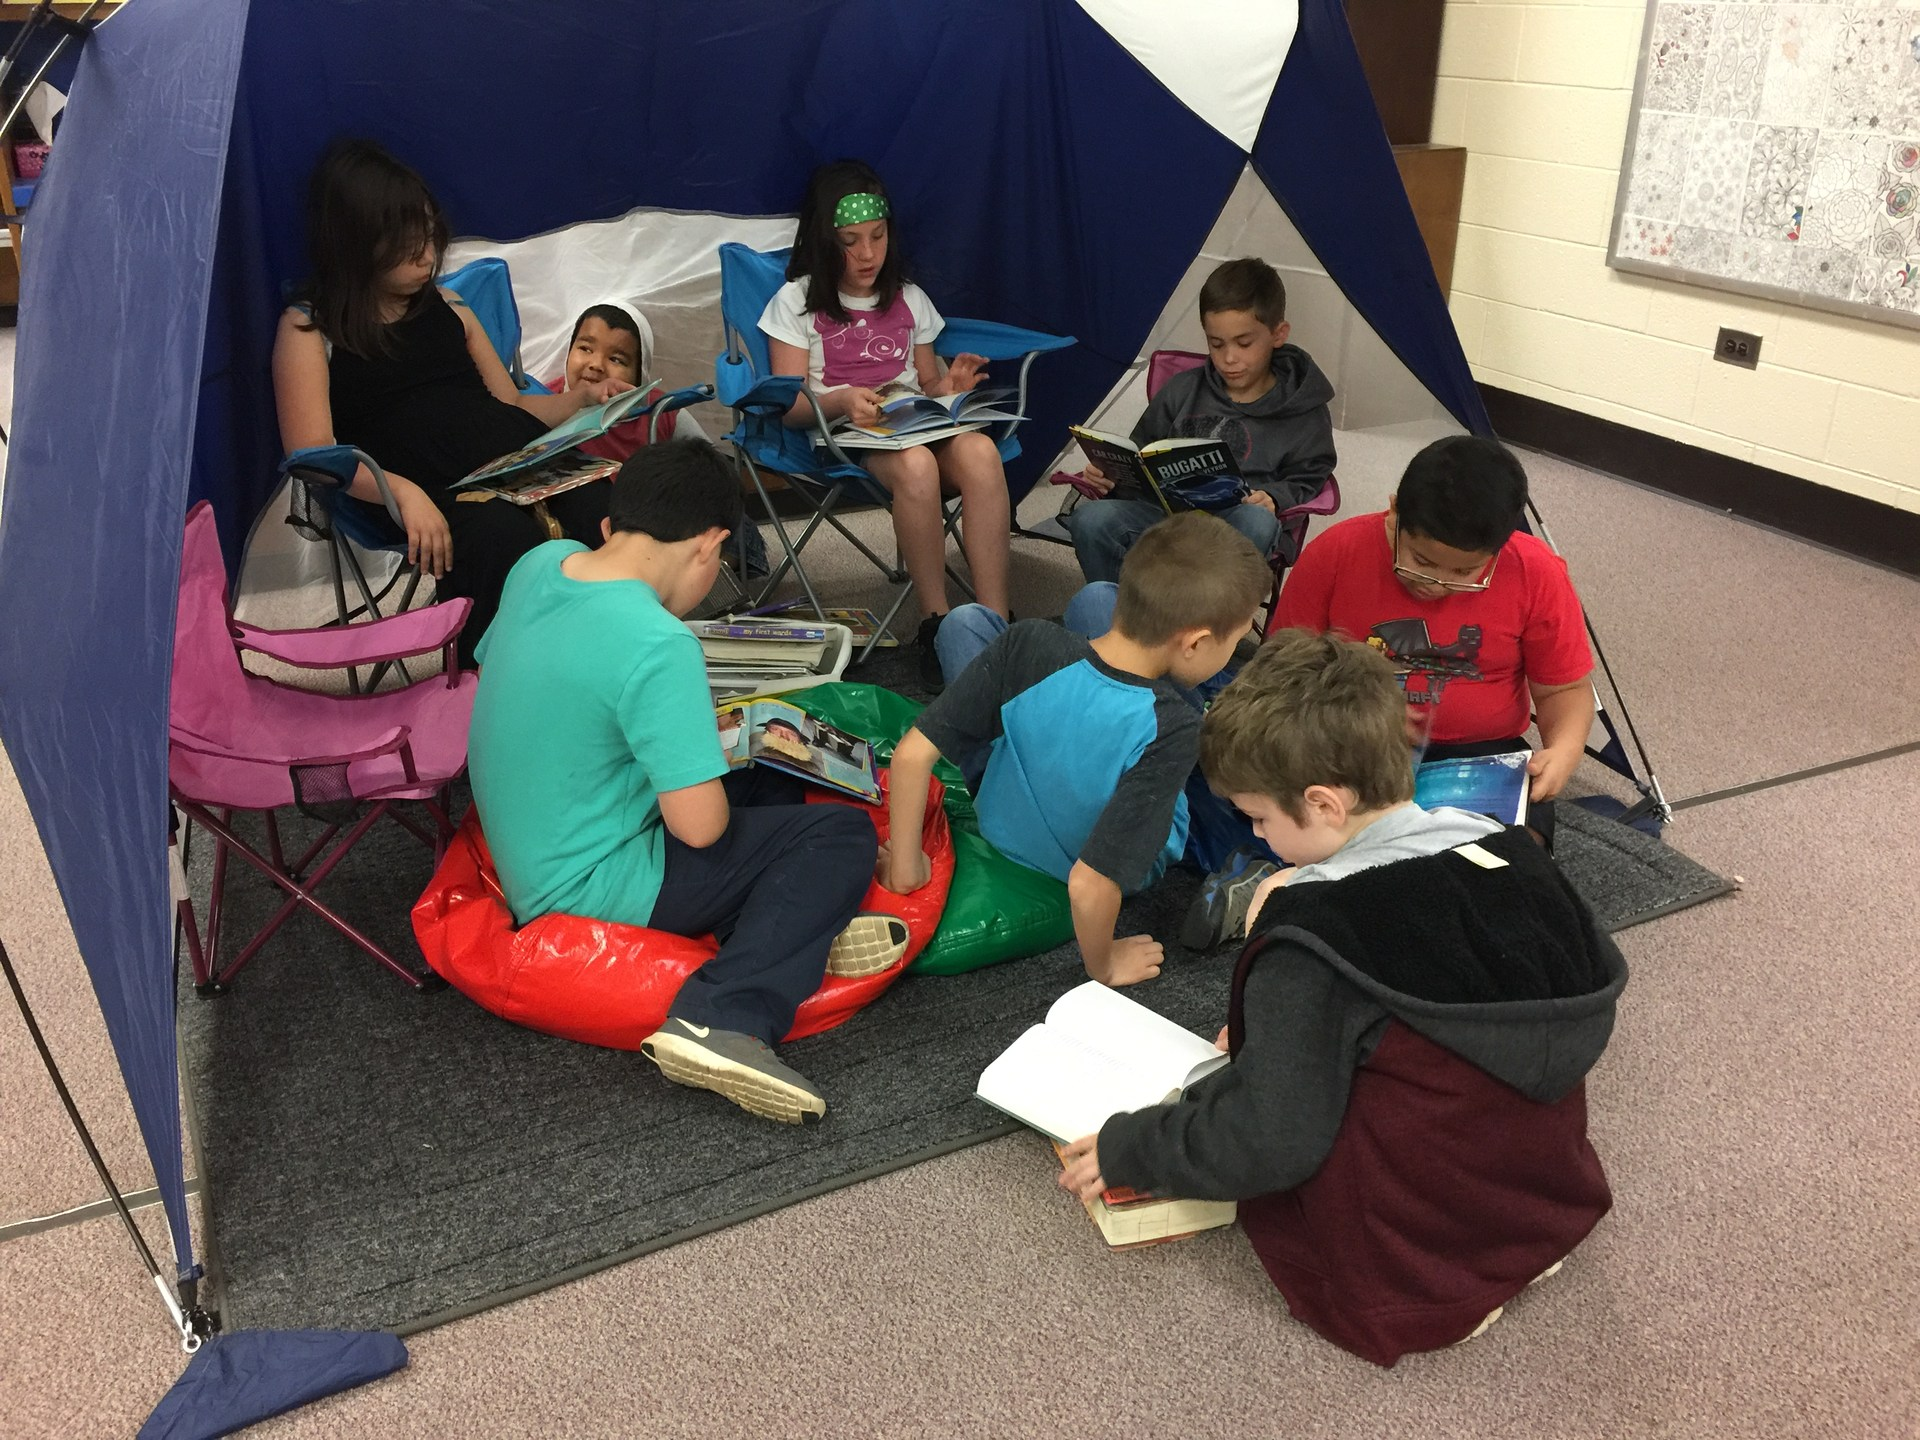 It's fun to read in the reading tent.